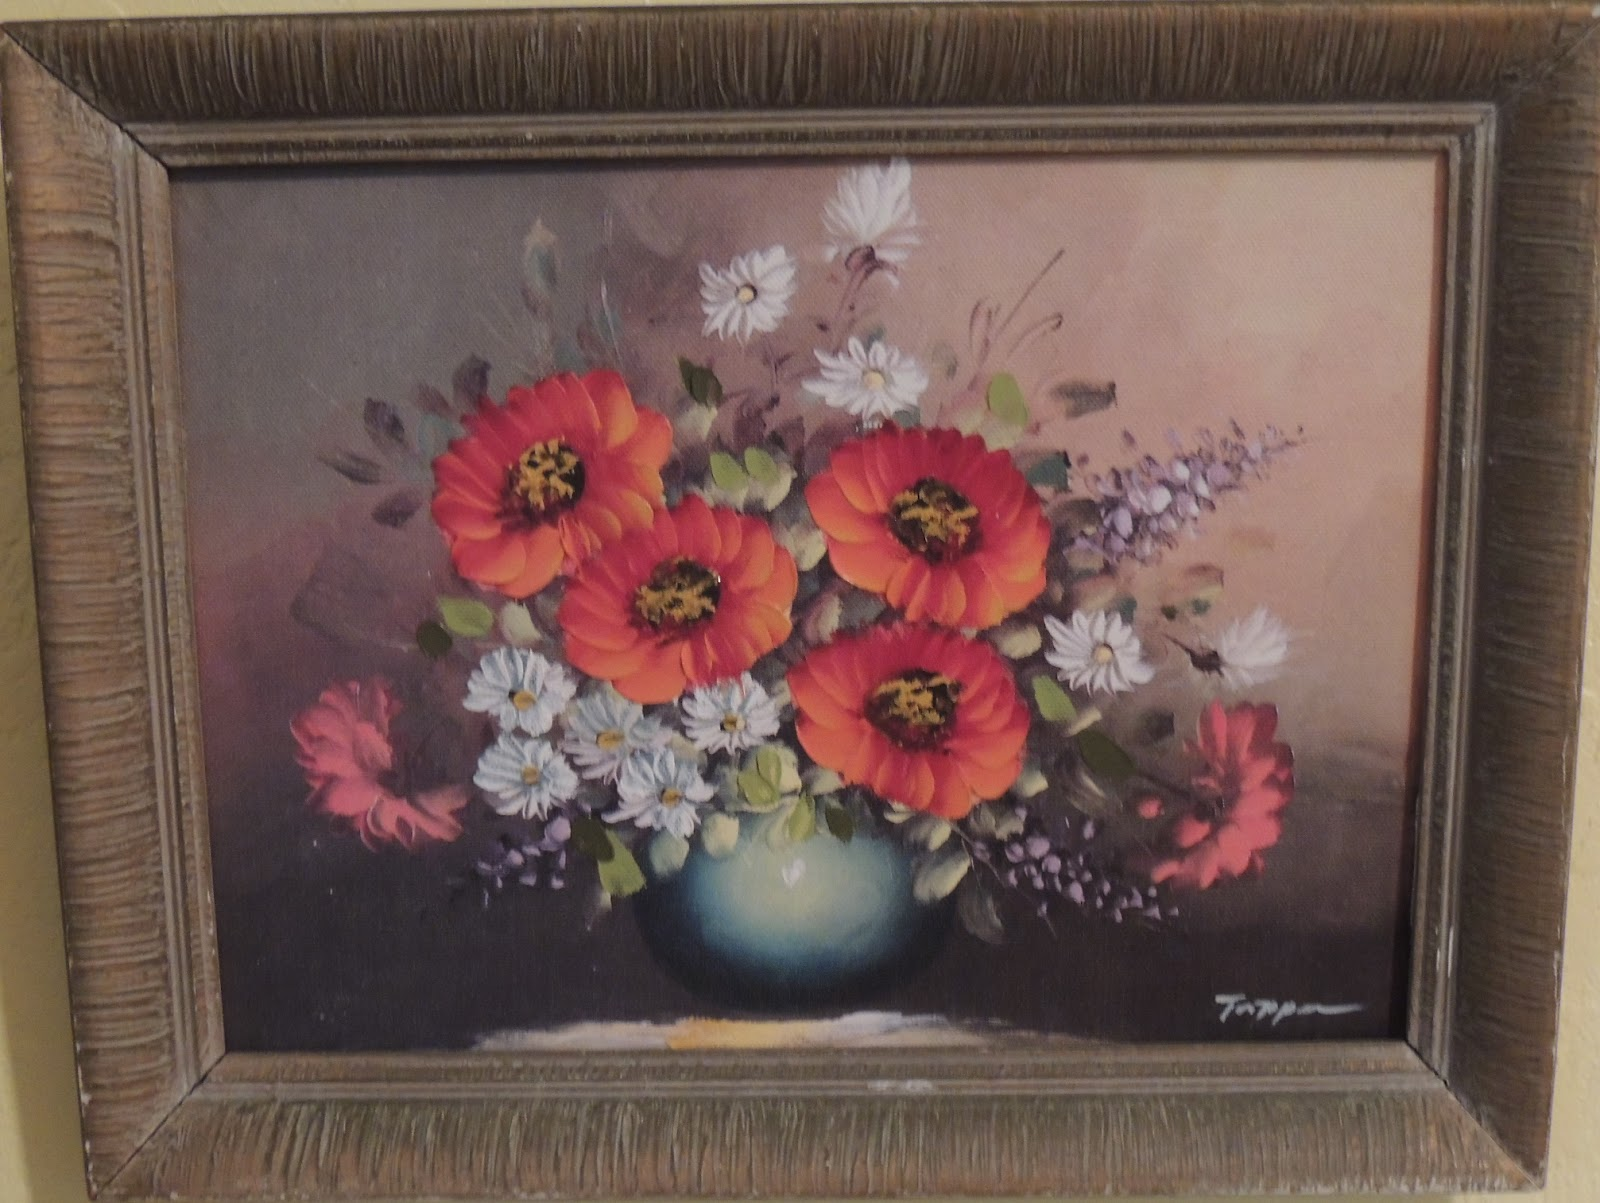 Color printing joliet - Original Framed Print Signed Tappan I Can T Read The Signature The Colors Of These Flowers Are Outstanding The Frame Has A Few Paint Chips Missing Due To